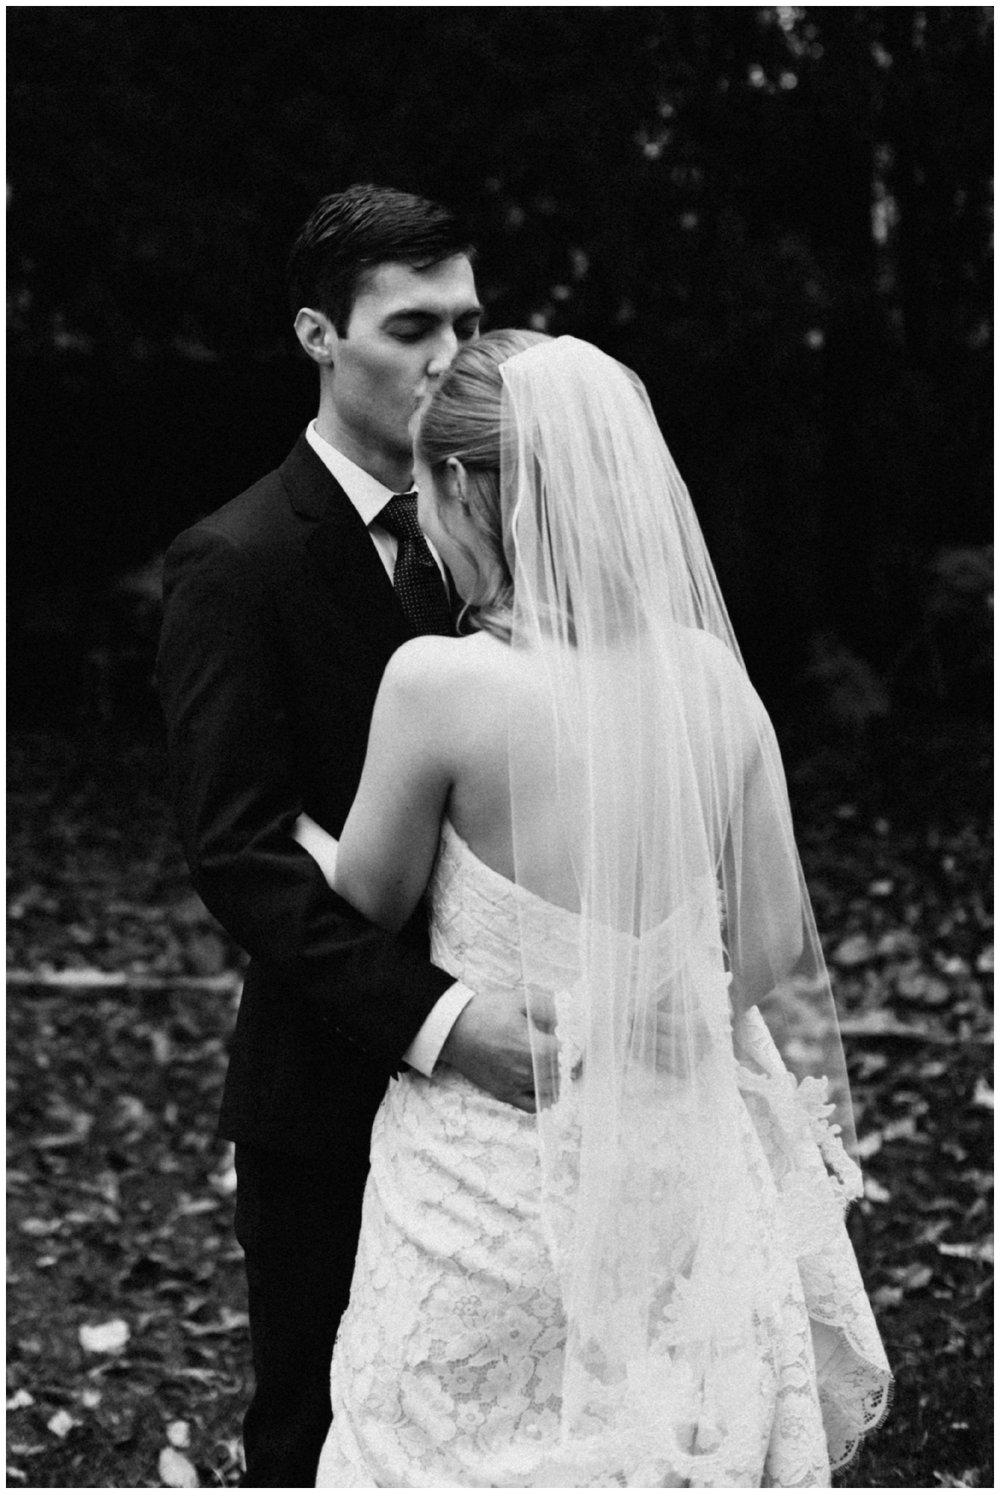 Timeless black and white wedding portrait at the St Paul College club photographed by Britt DeZeeuw